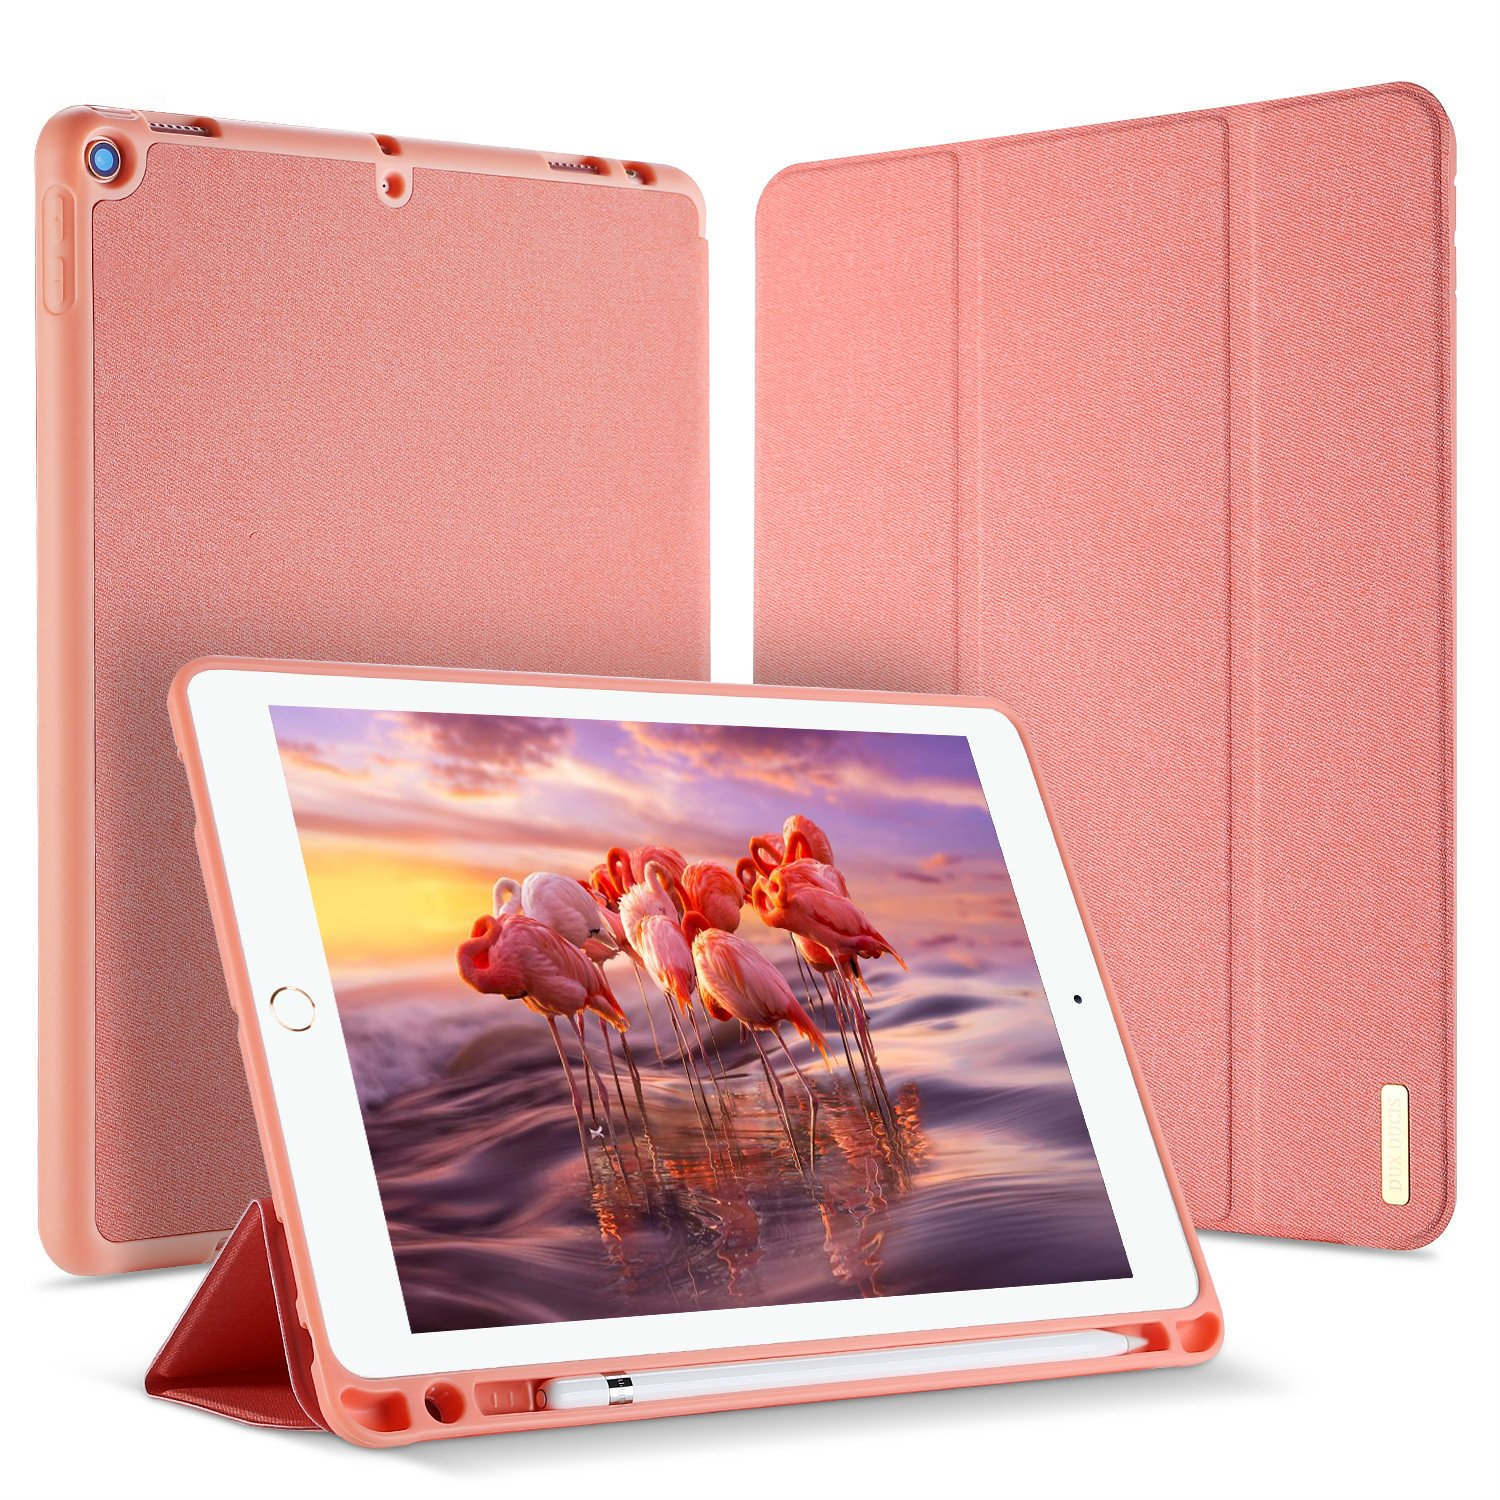 DUX DUCIS Funda iPad 9.7 2018 con Apple Pencil Holder,Flip Folio Cover Soporte Plegable Rosa Dorada Ultra-Delgado Protecci/ón De Completo Carcasa Case para Apple iPad 9.7 2018 Auto Sue/ño//Estela